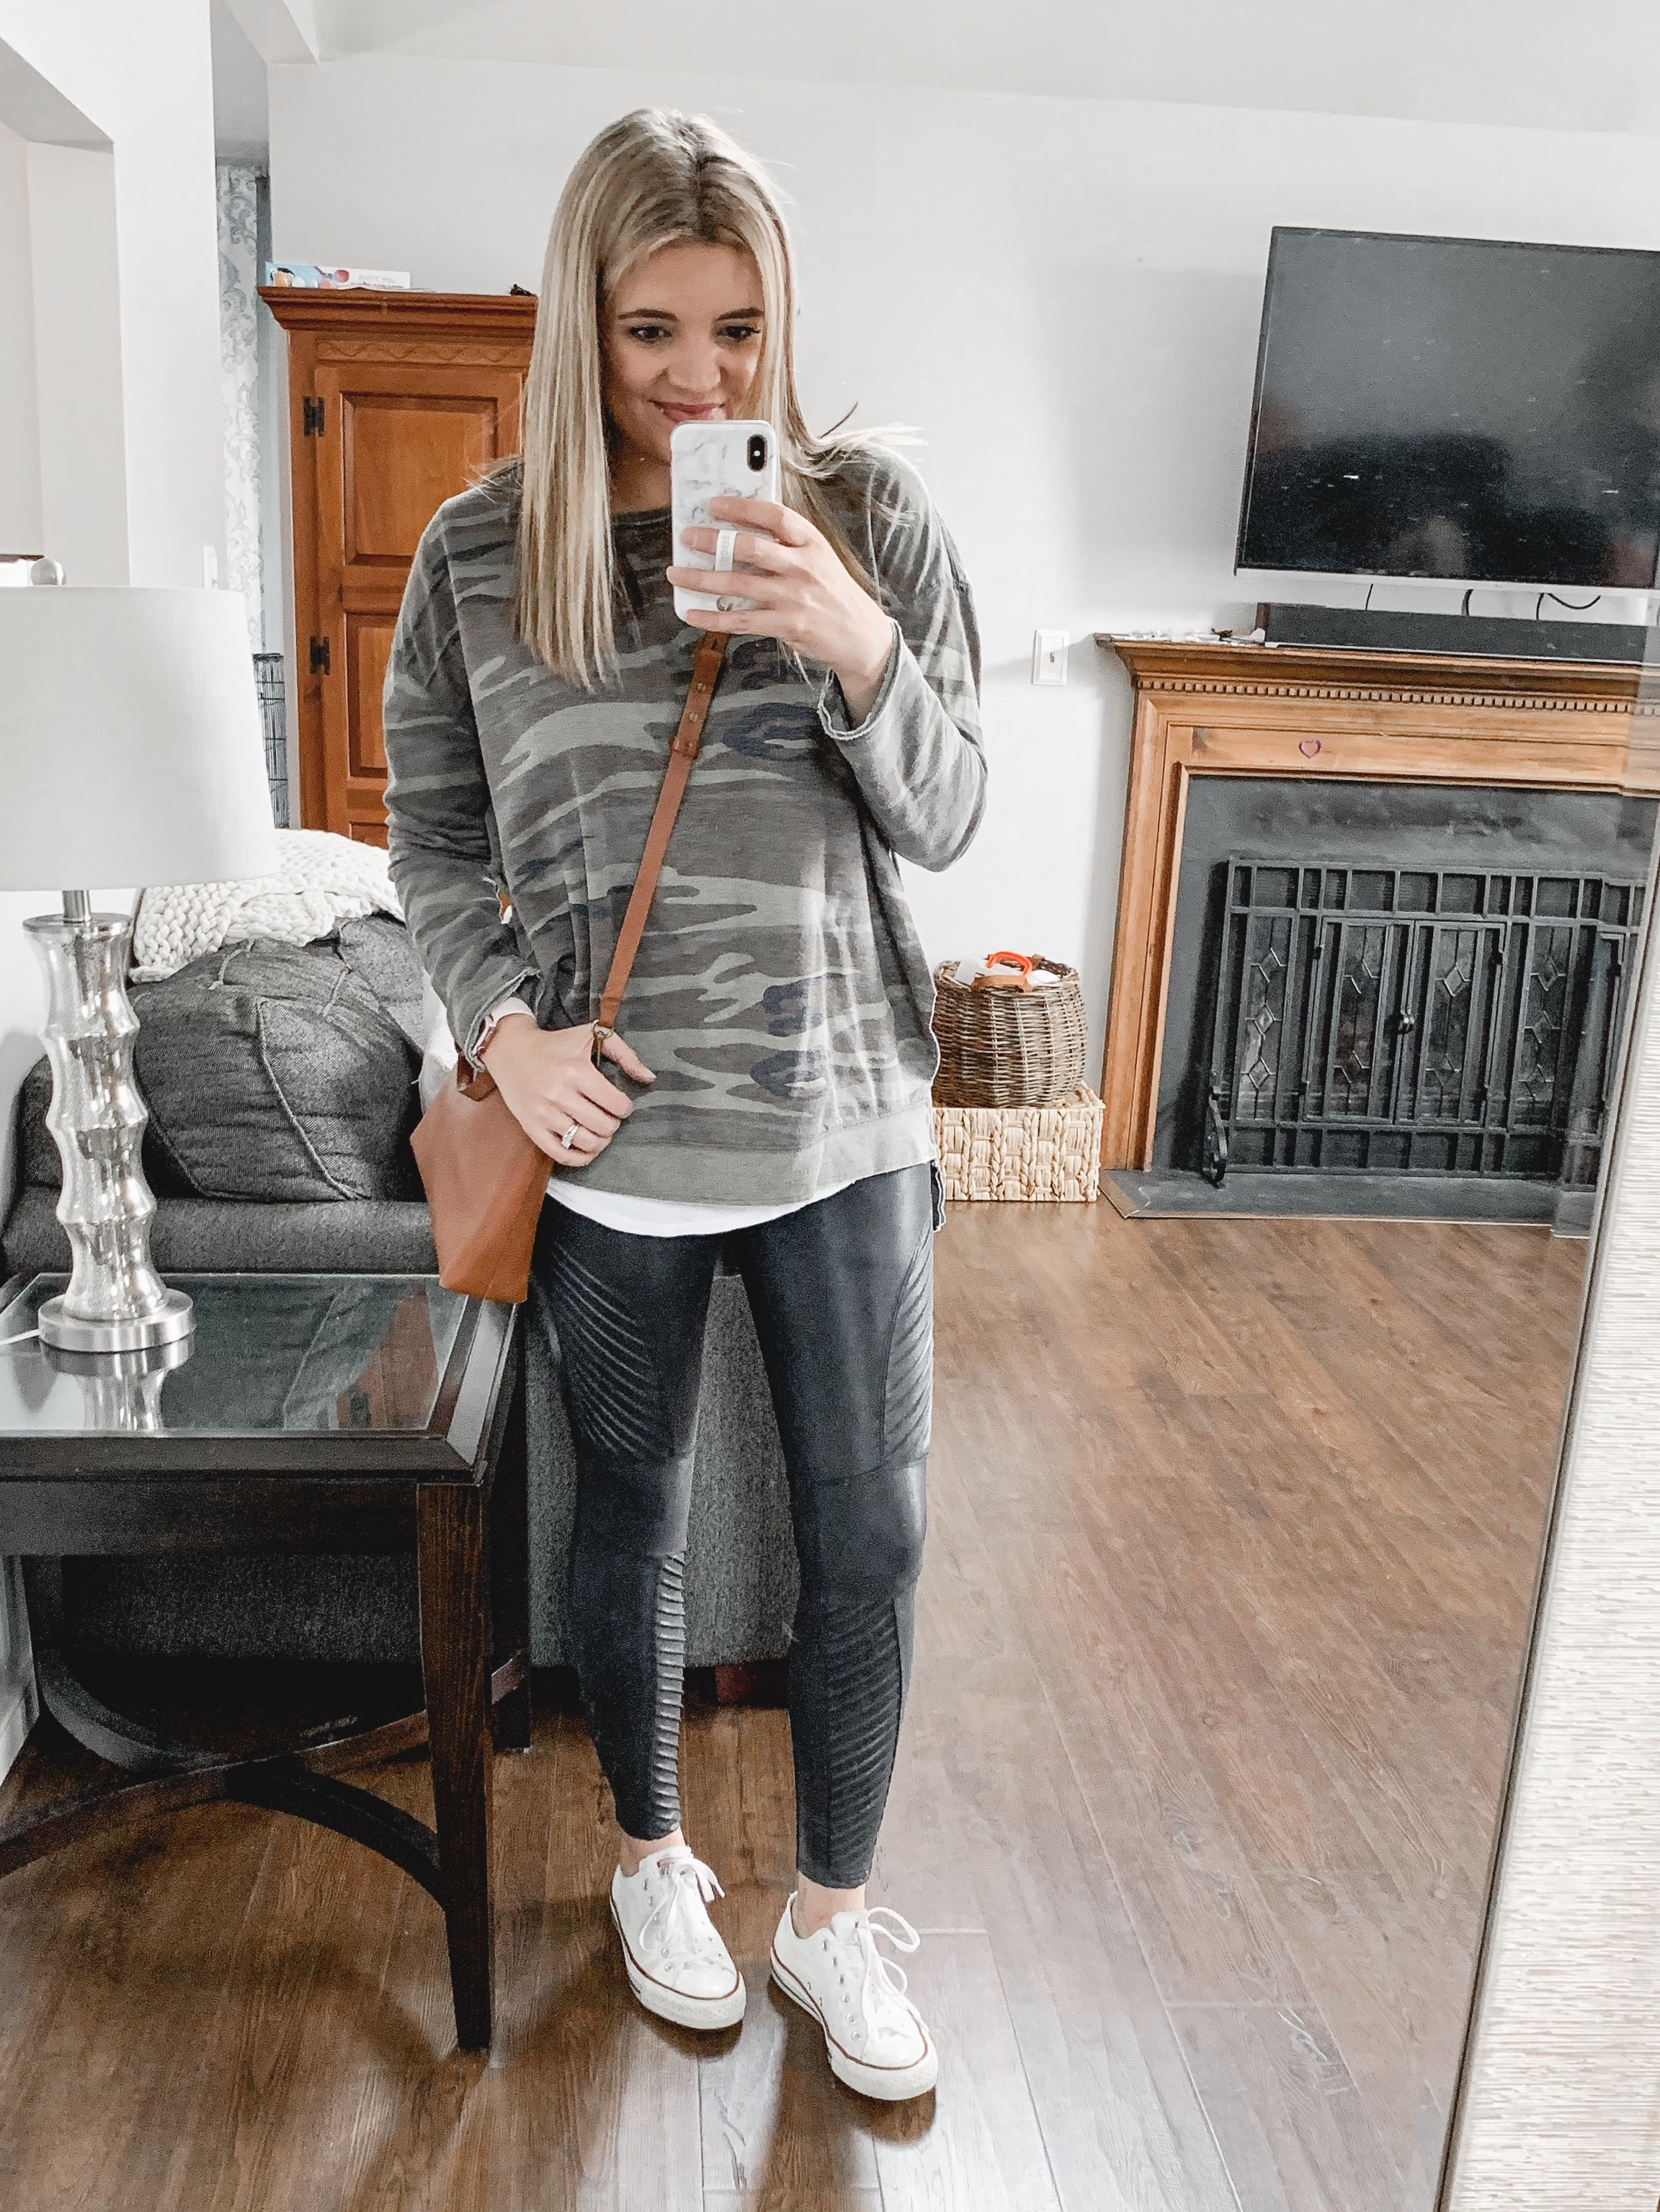 Affordable style blogger Lauren Dix shares her top Shopbop sale picks, including her favorite Spanx moto leggings!